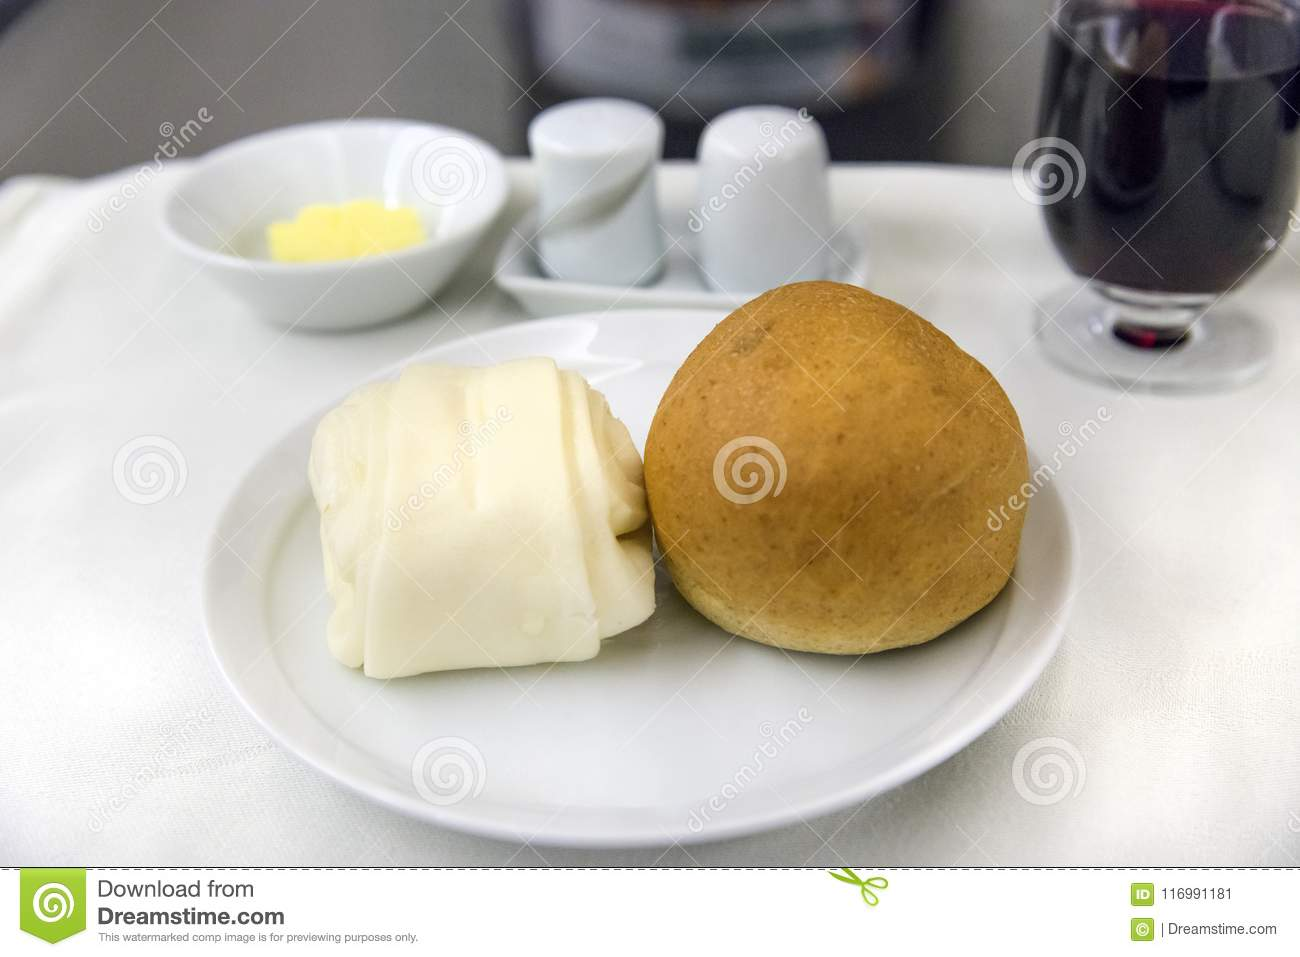 Set inflight meal on a tray, on a white table